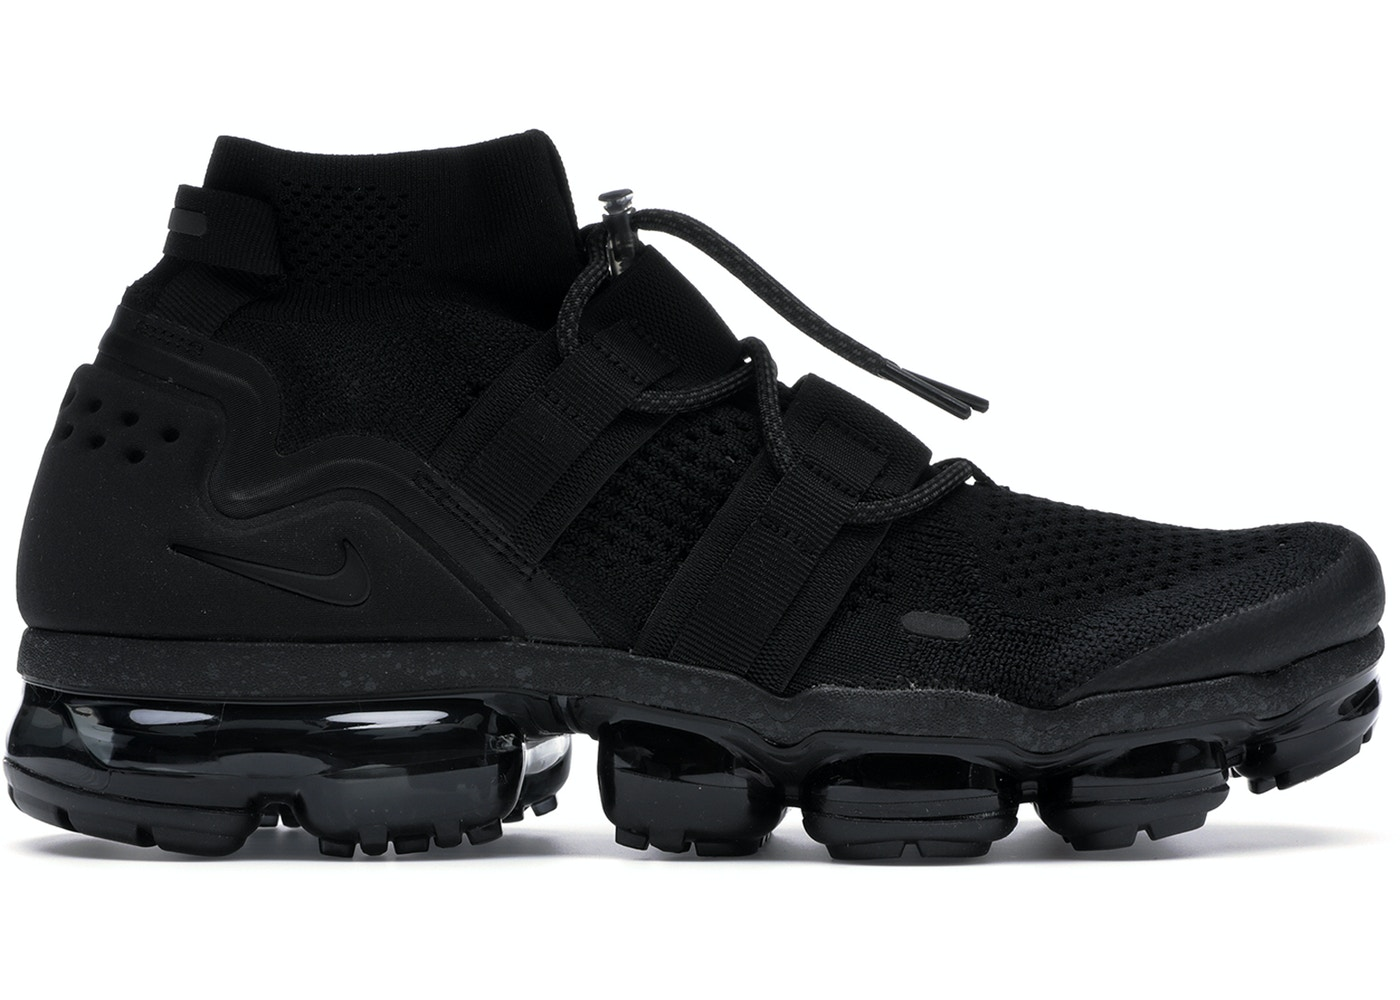 b98a0ce25a1 Air VaporMax Utility Triple Black - AH6834-001